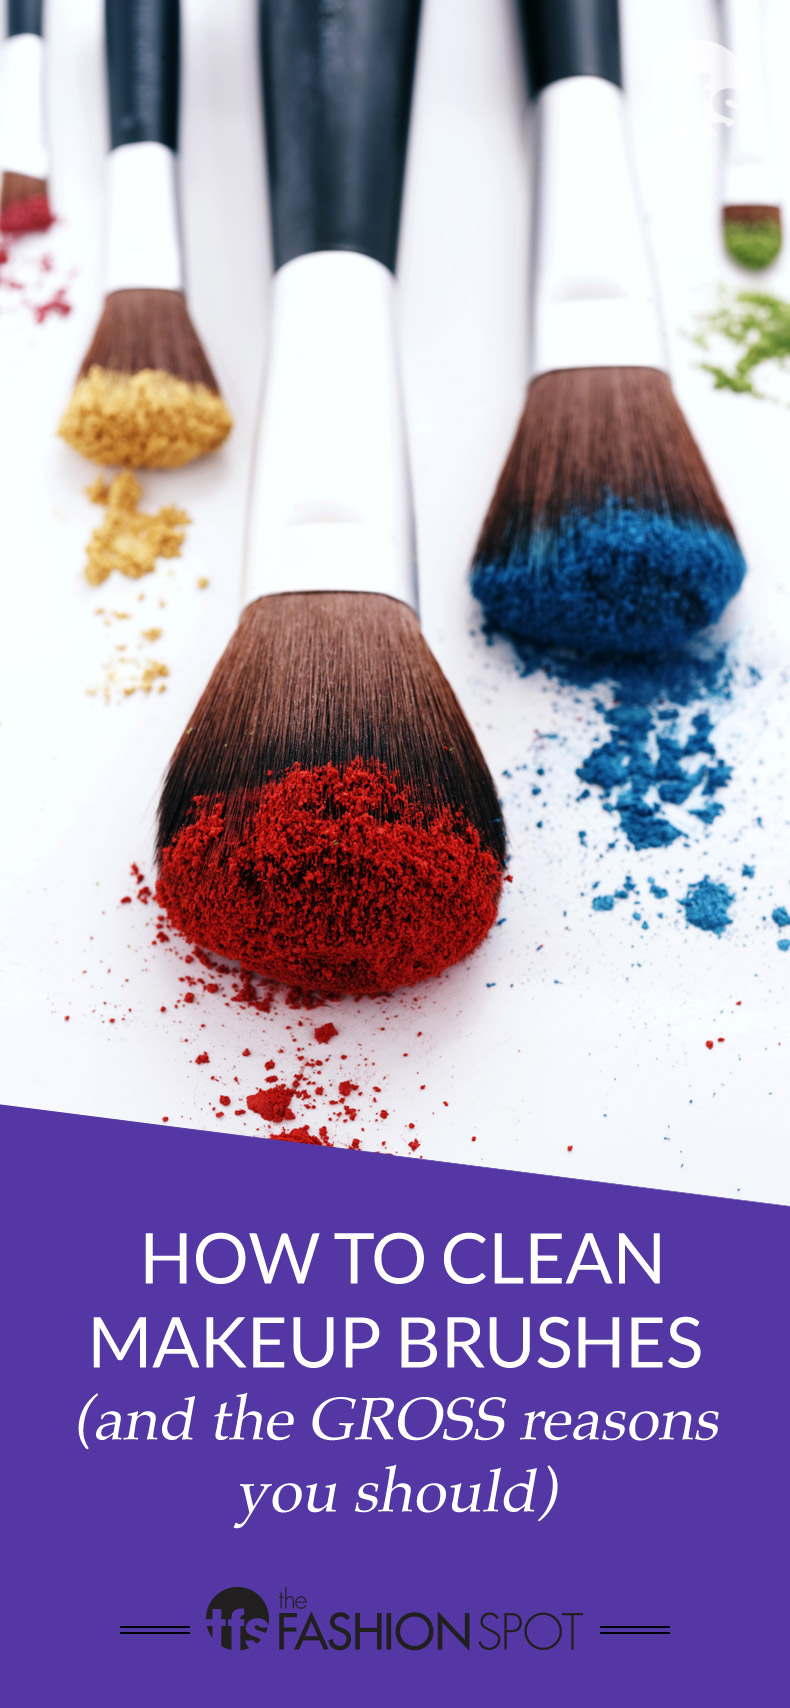 How to Clean Makeup Brushes (and the Gross Reasons Why You Should)